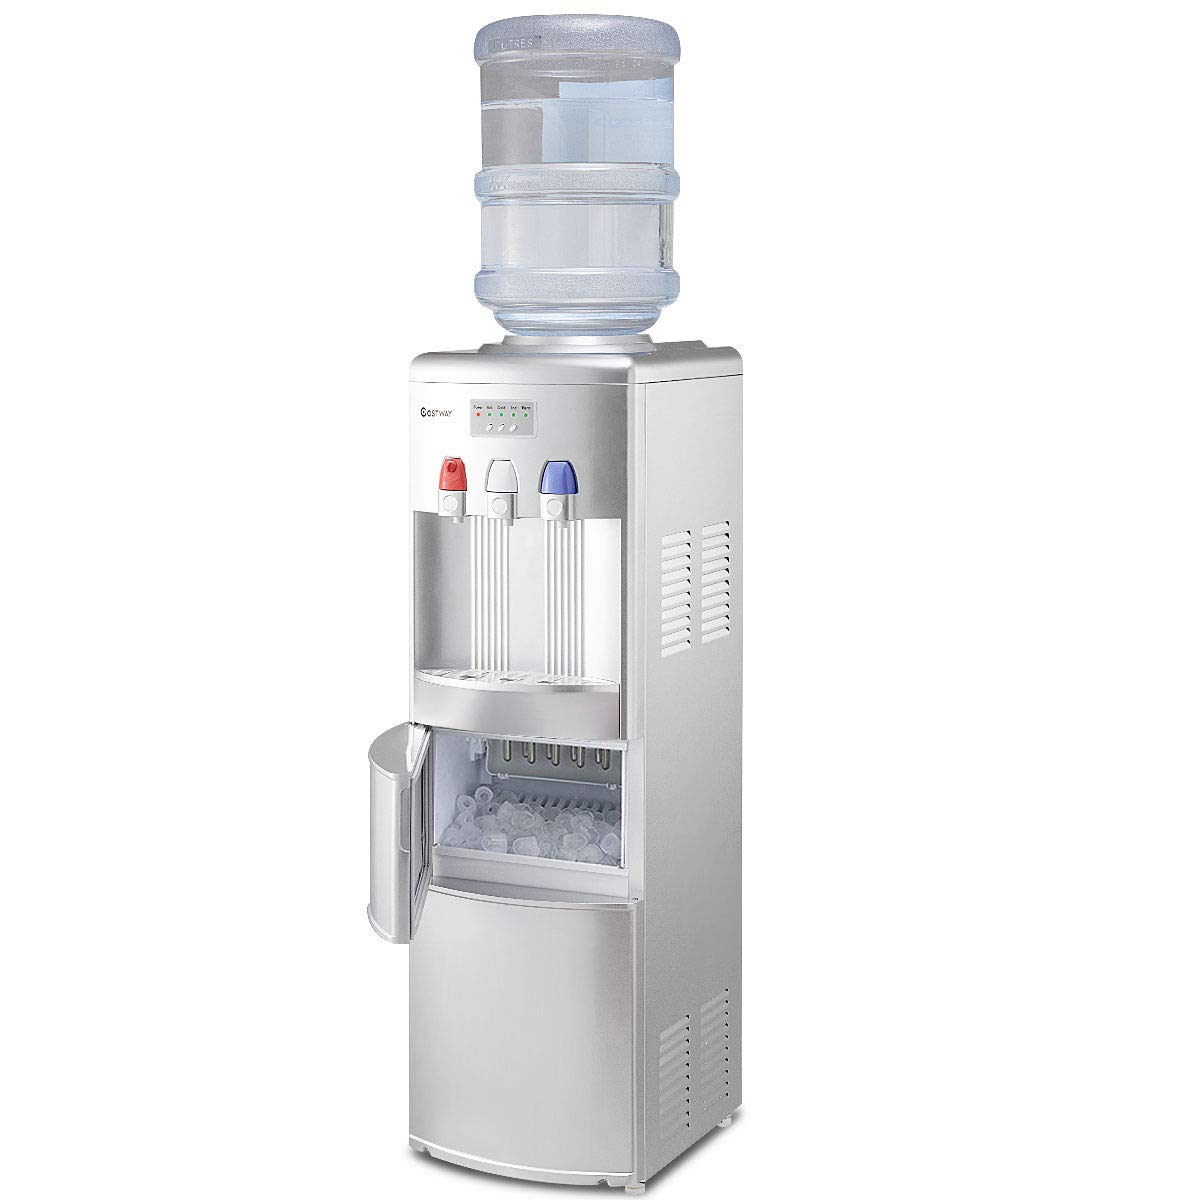 Costway 2-in-1 Water Cooler Dispenser with Built-in Ice Maker Freestanding Hot Cold Top Loading Water Dispenser 27LB/24H Ice Machine with Child Safety Lock, Silver